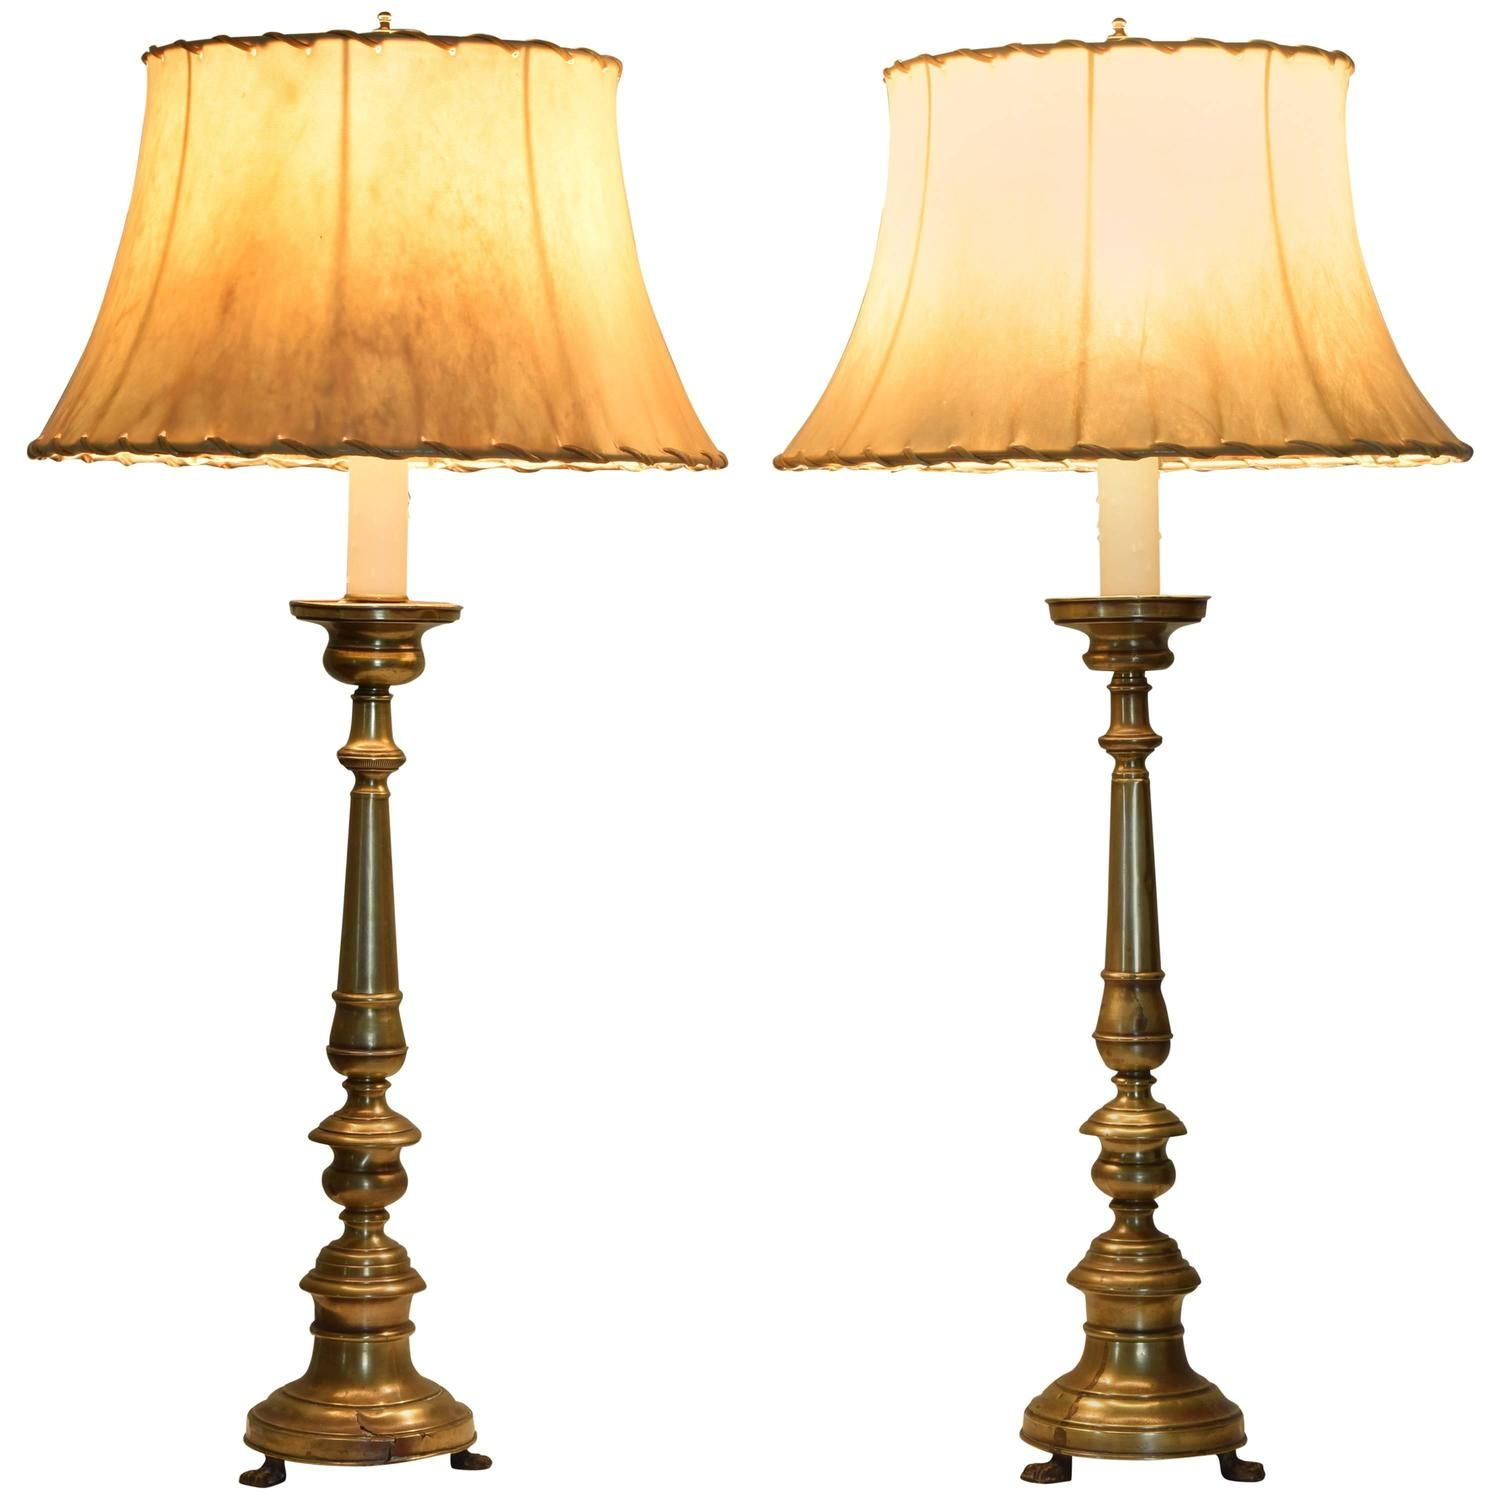 Italian Neoclassical Brass Candlesticks As Table Lamps, Circa 1840